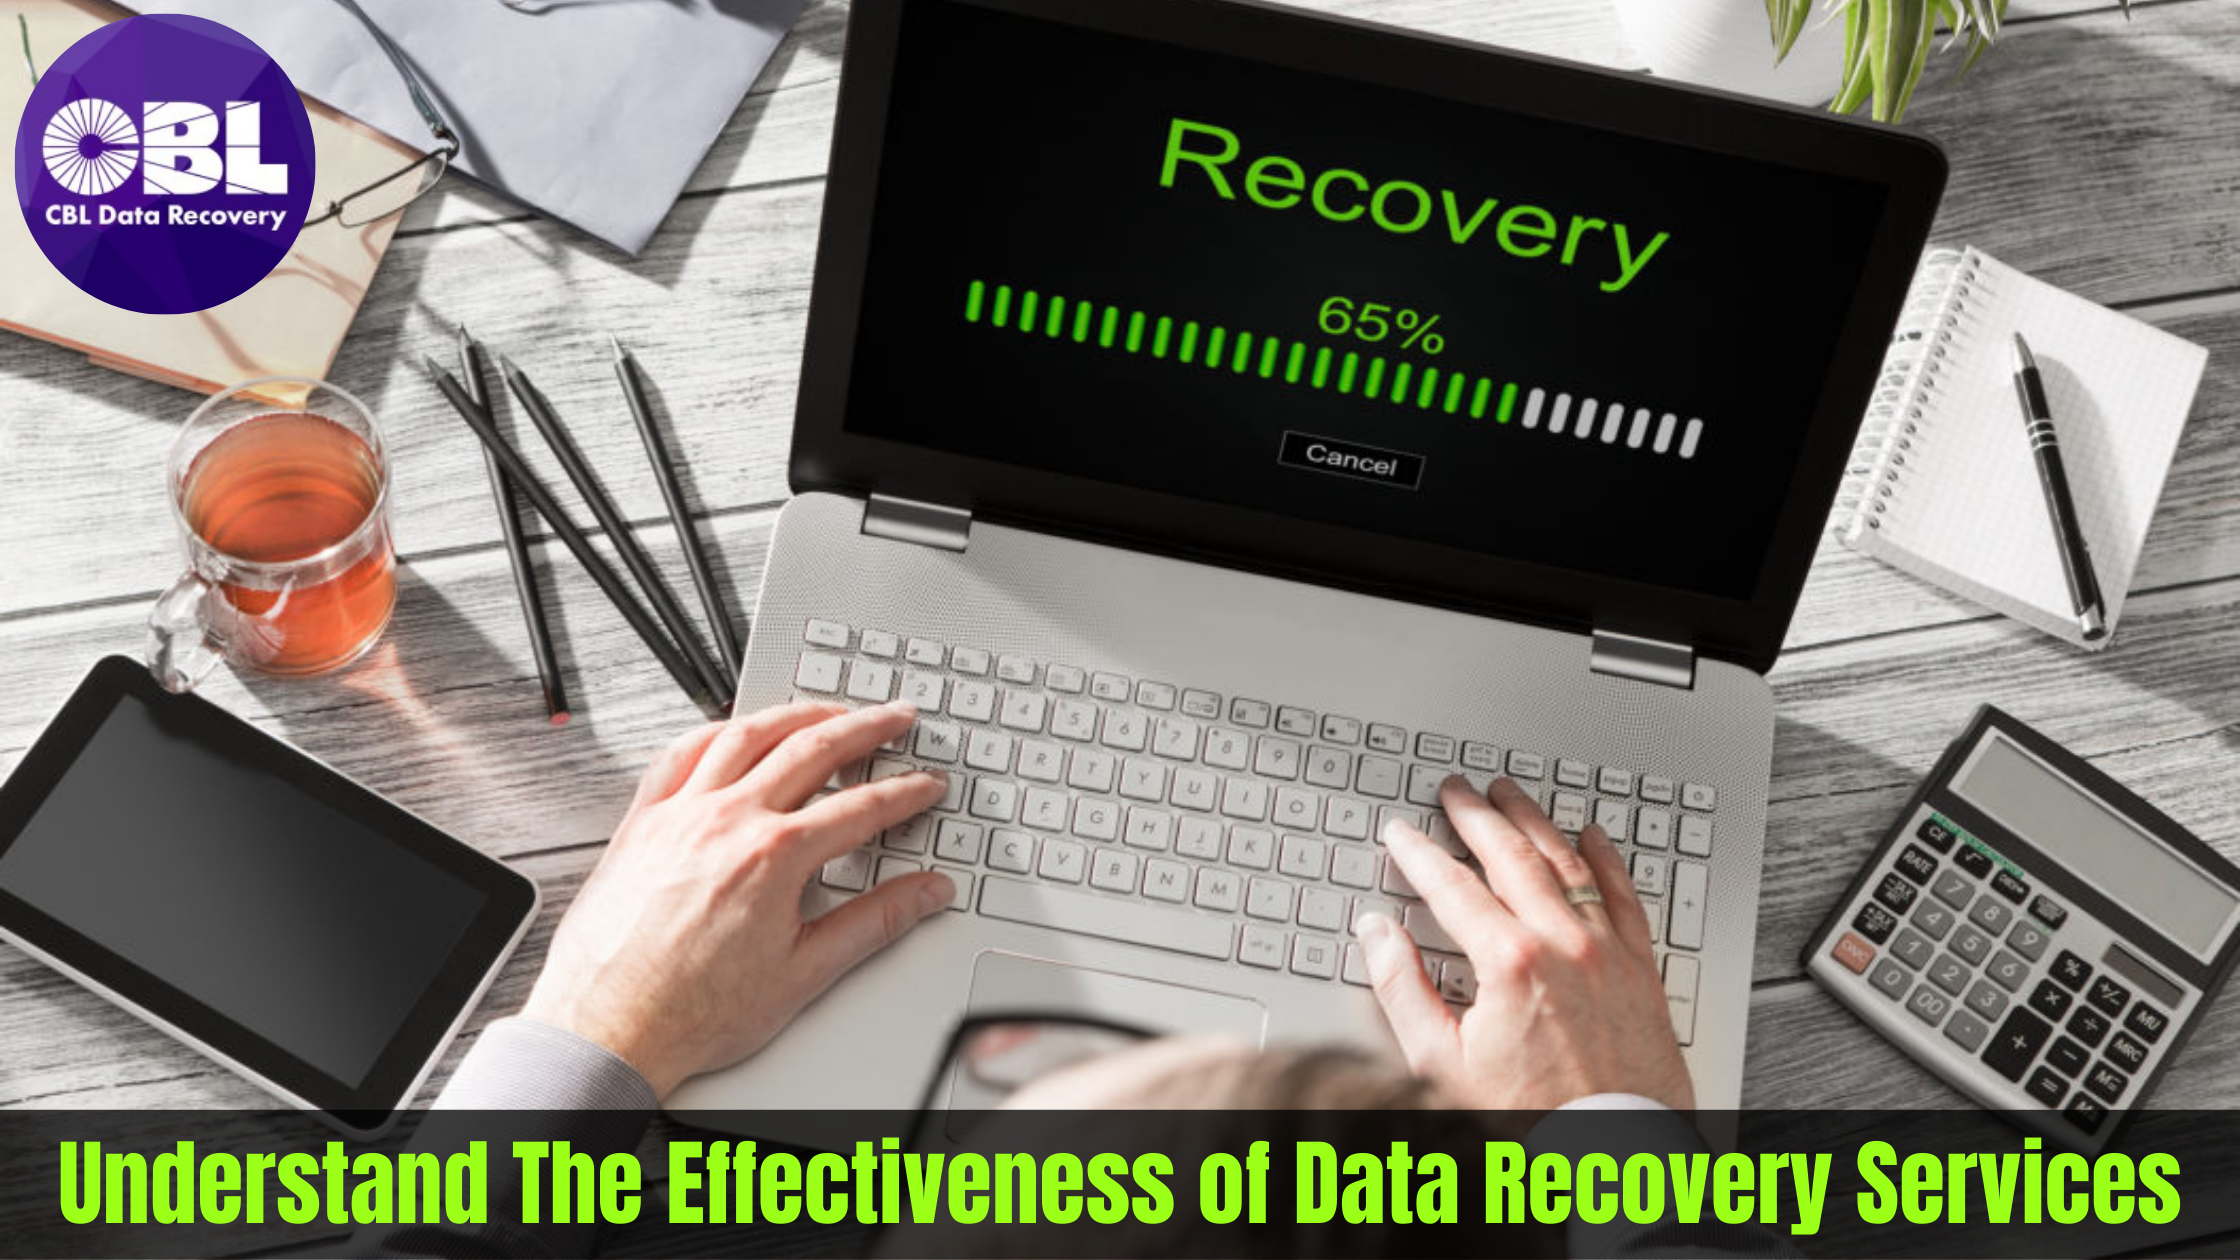 Understand The Effectiveness of Data Recovery Services